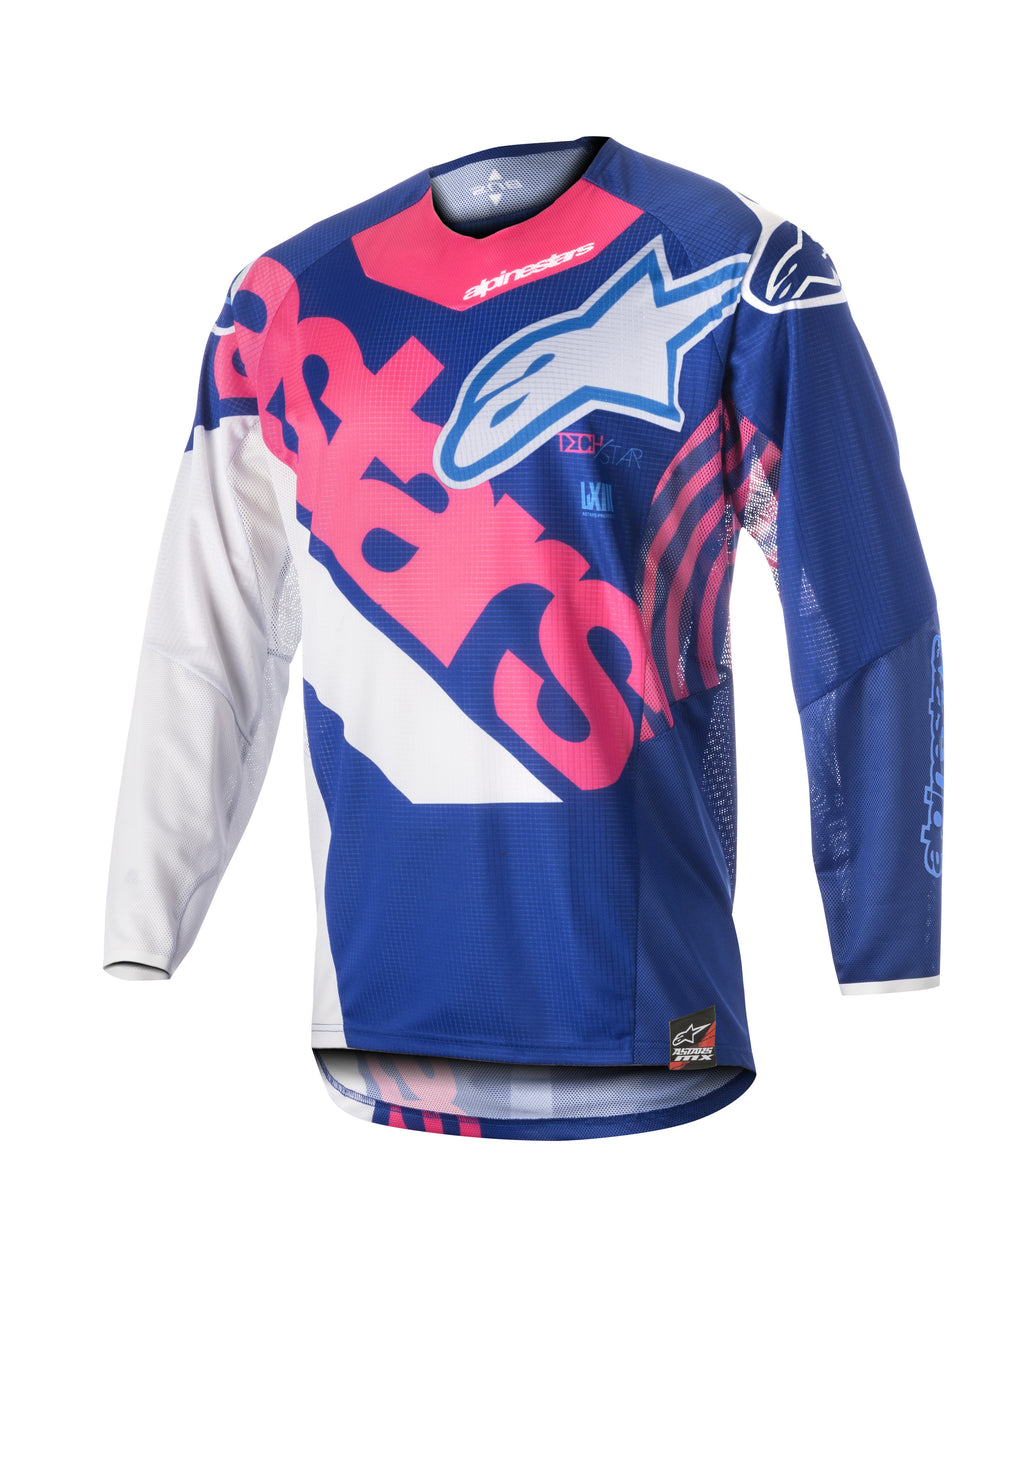 Kit Jersey Alpinestars Racer Venom Youth - 2018- Plue Pink White S - Small